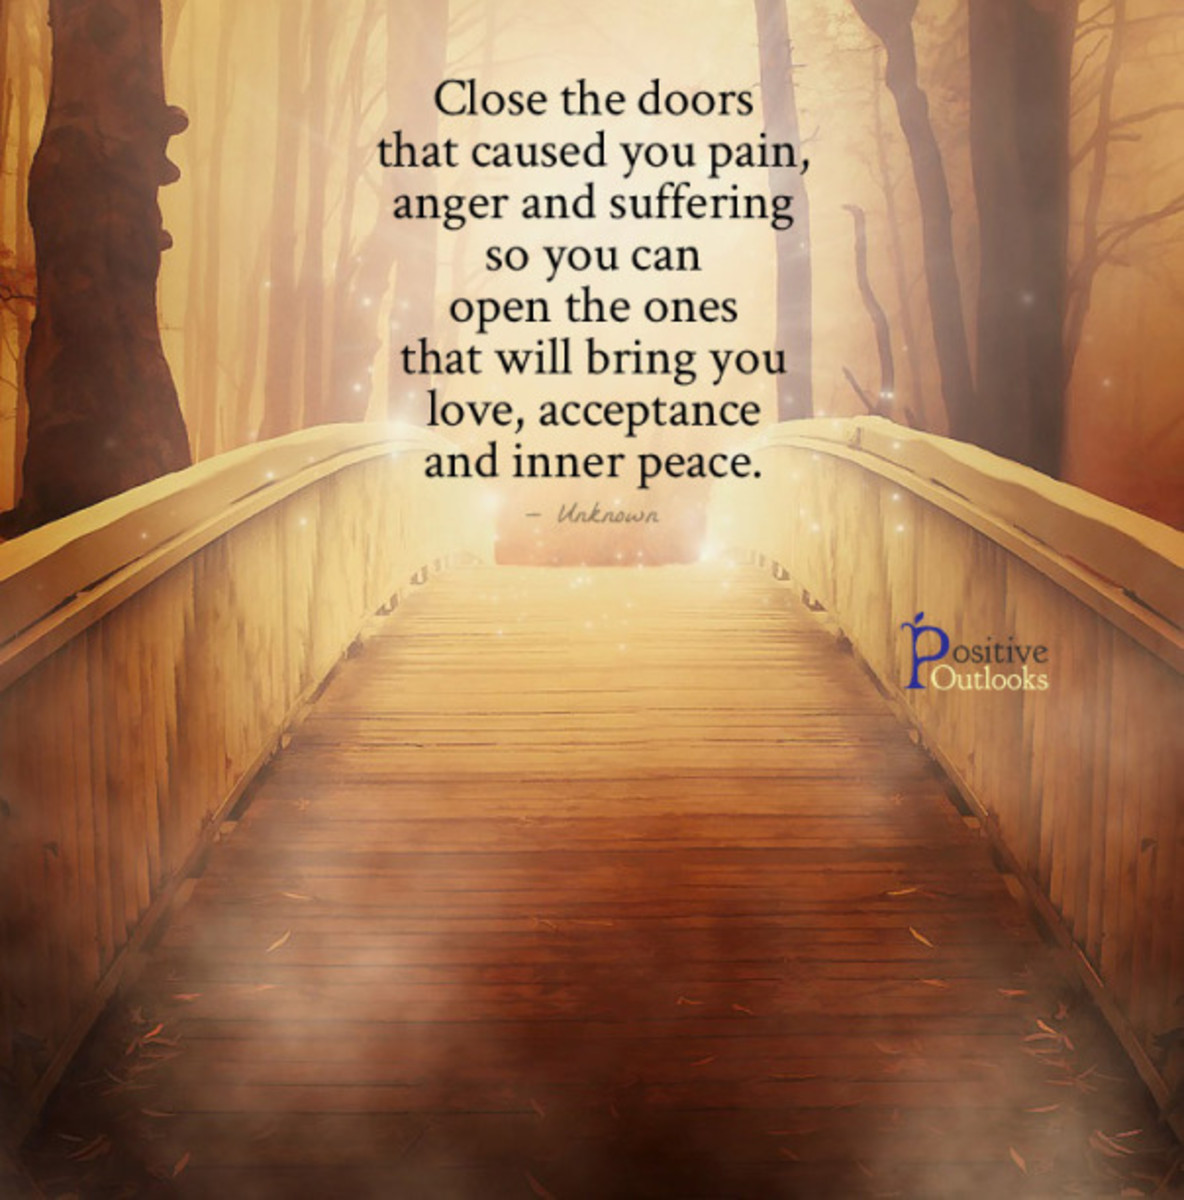 httppammorrishubpagescomhubclose-the-doors-that-cause-pain-anger-and-suffering